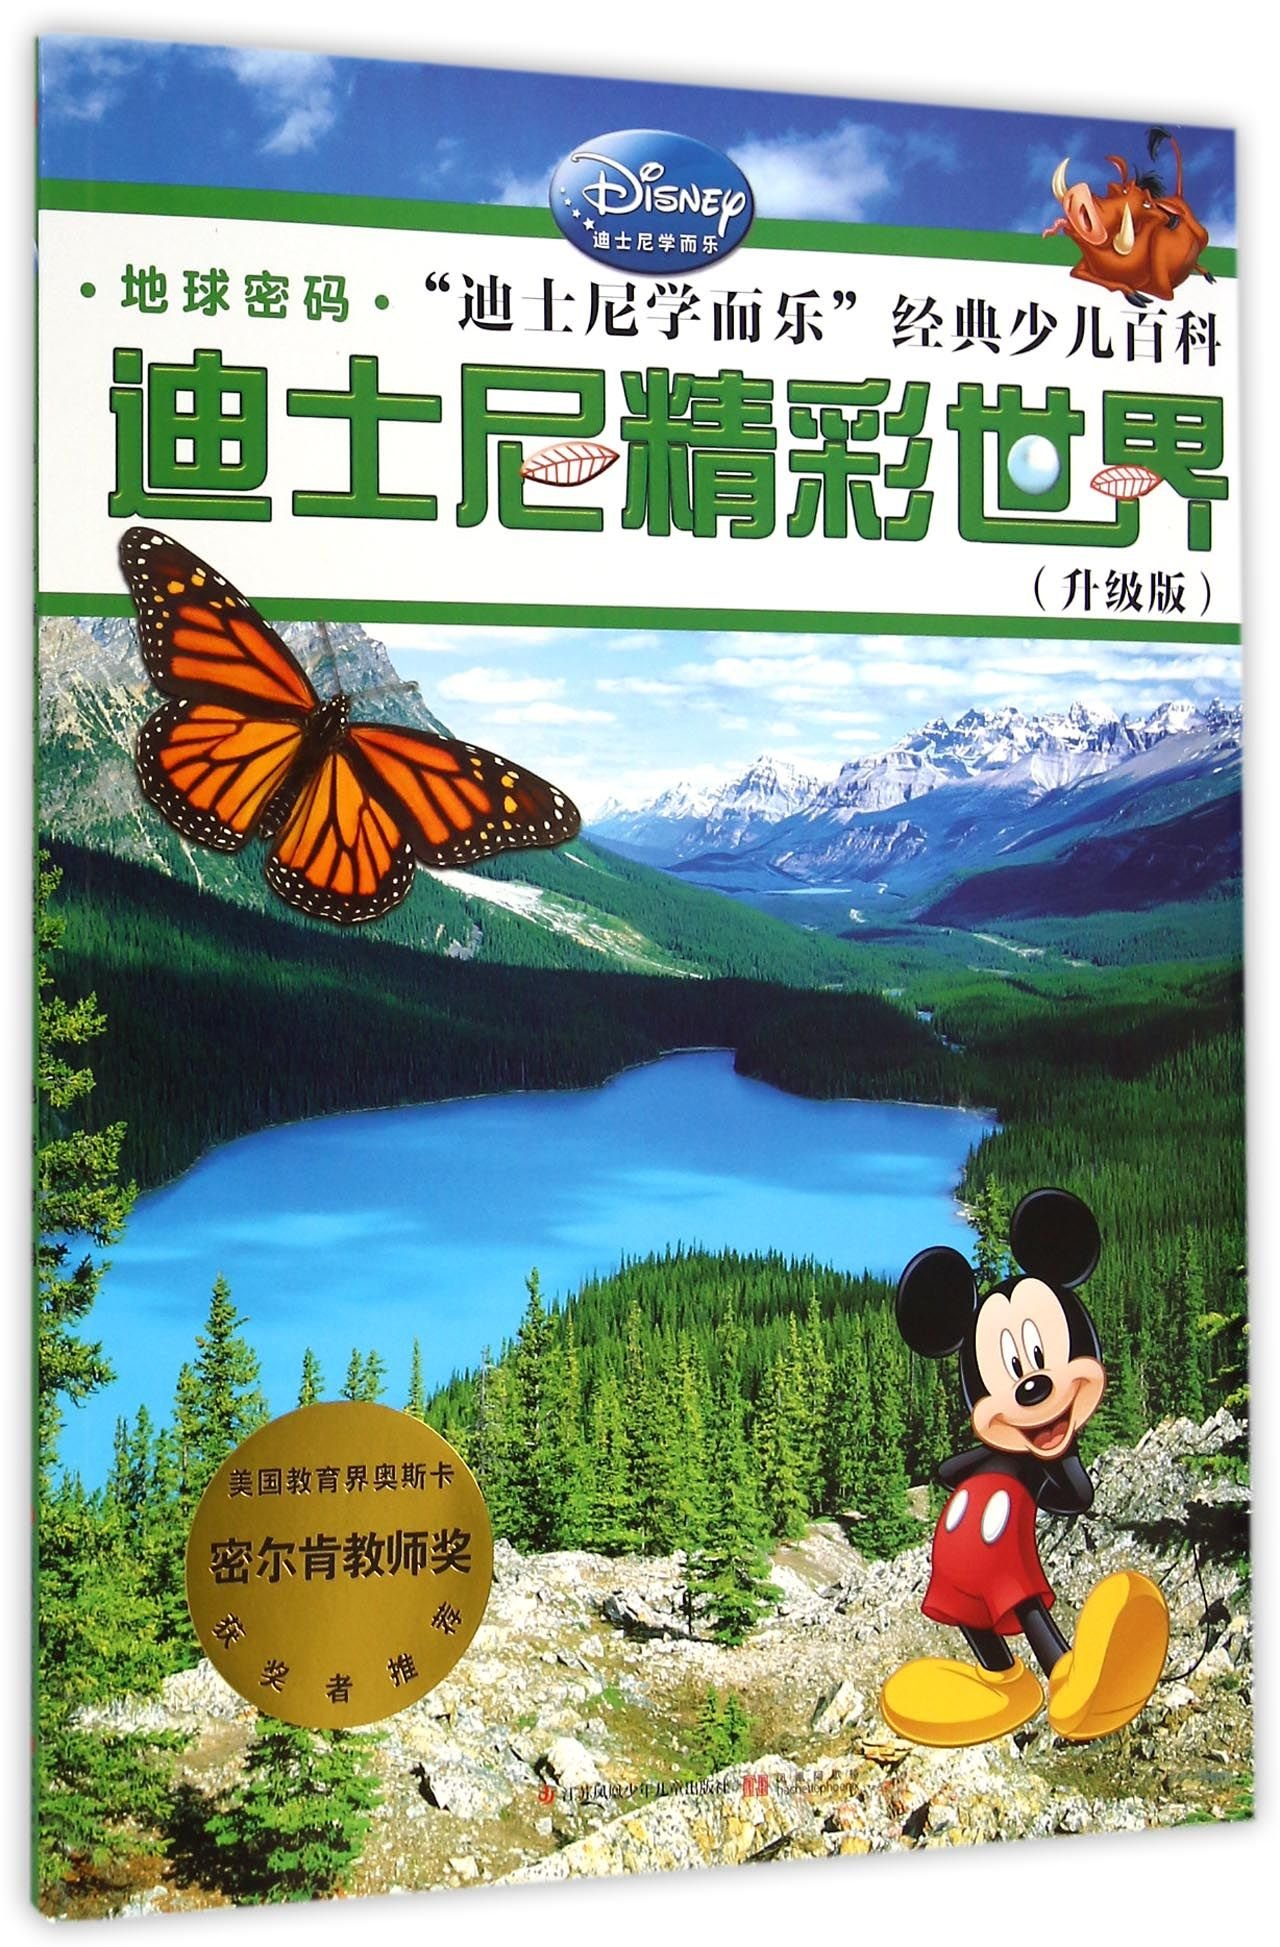 Download Disney Wonderful World: Code of the Earth (Upgraded) (Chinese Edition) ebook